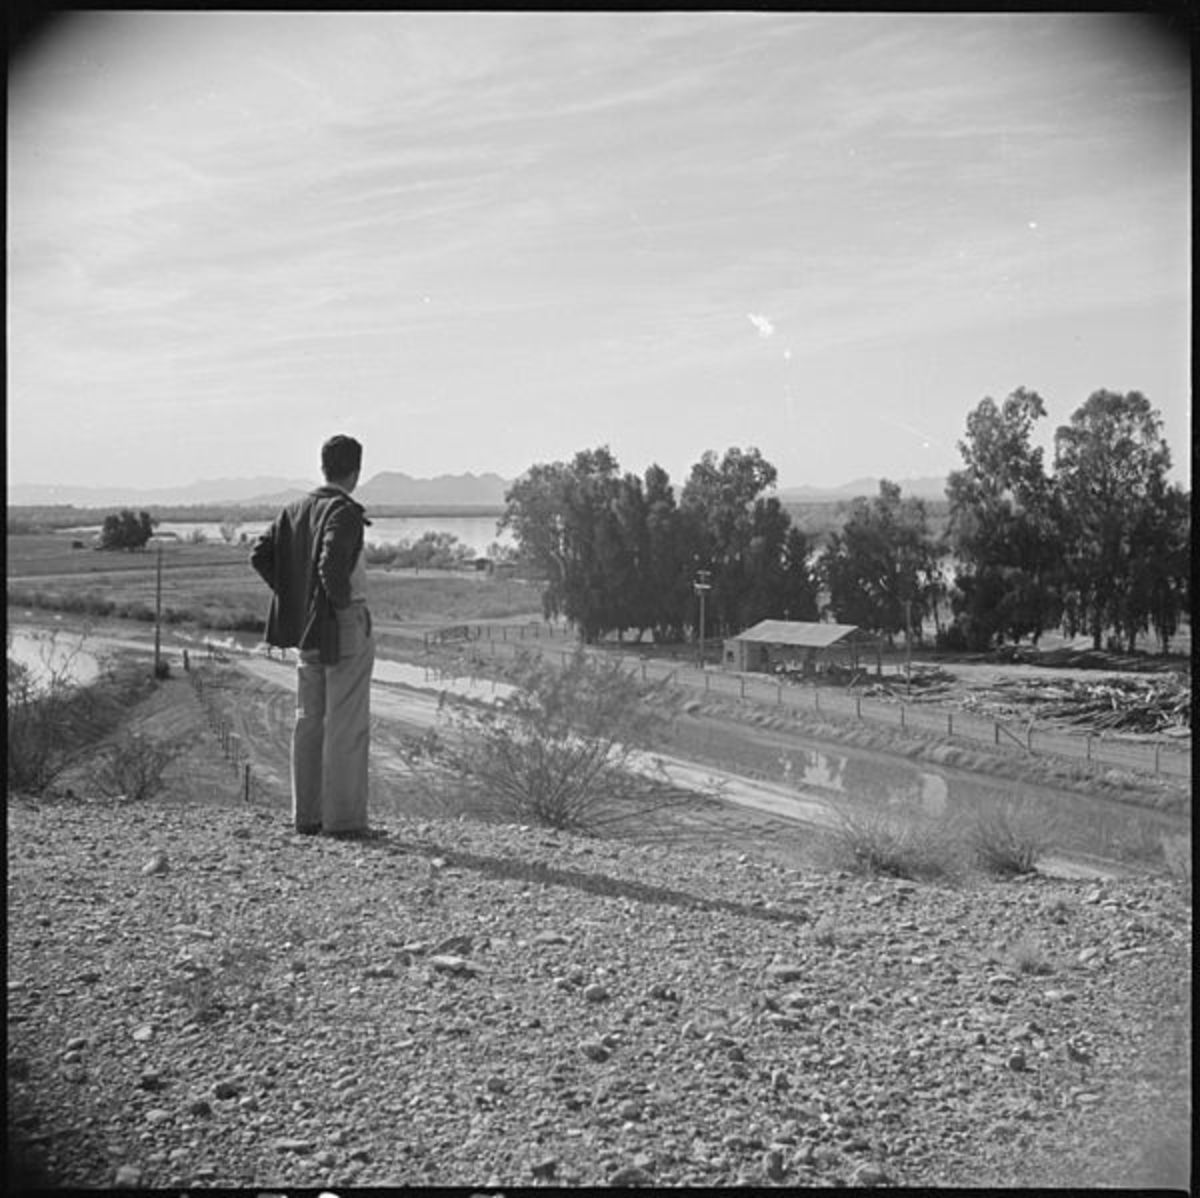 Poston, Arizona.  Overlooking a typical Arizona irrigation canal.